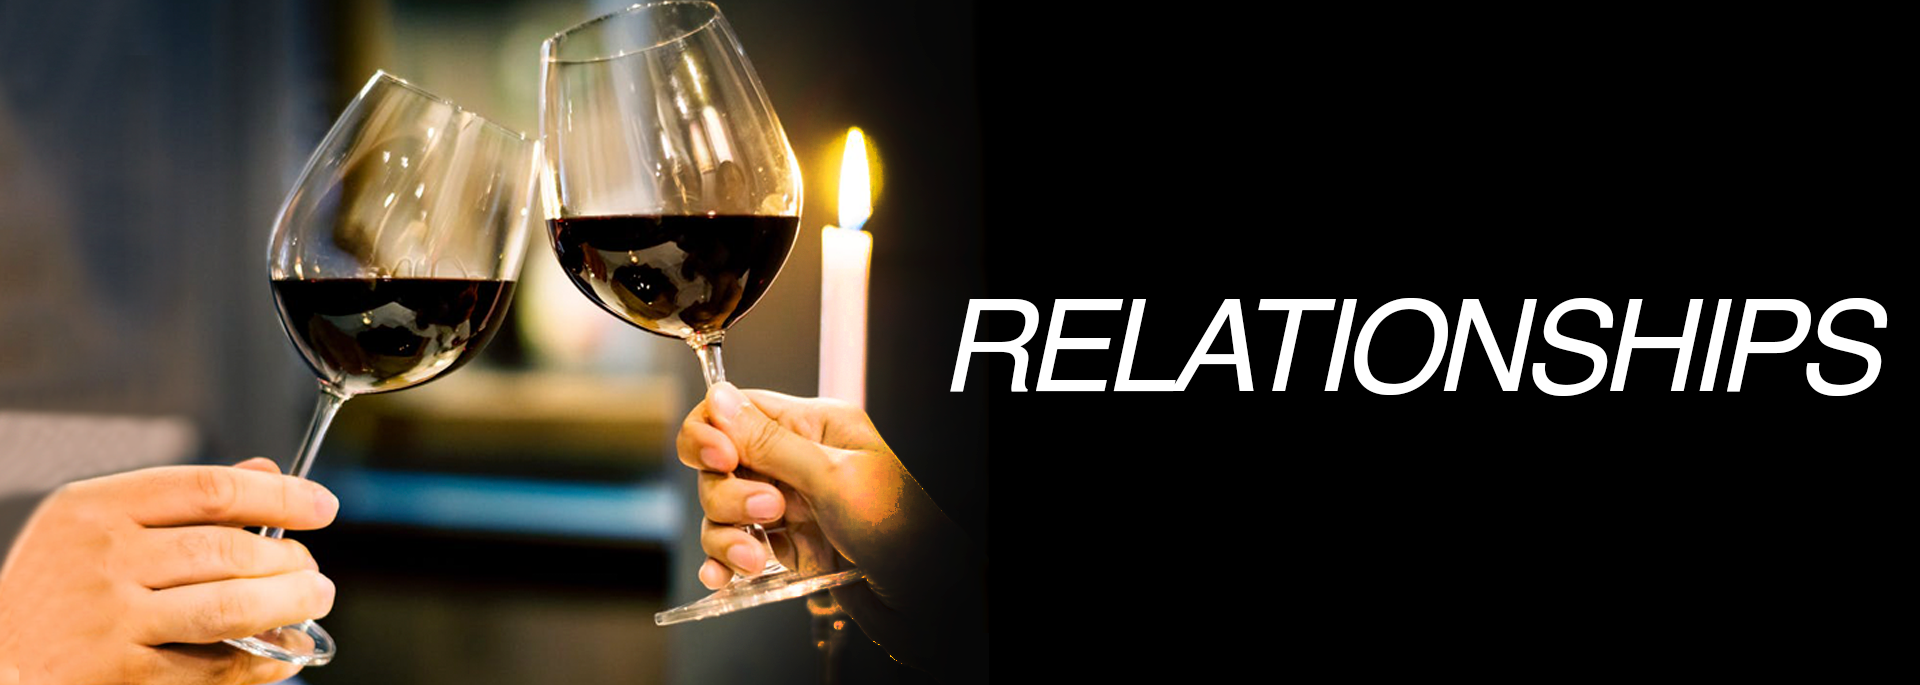 RELATIONSHIPS category